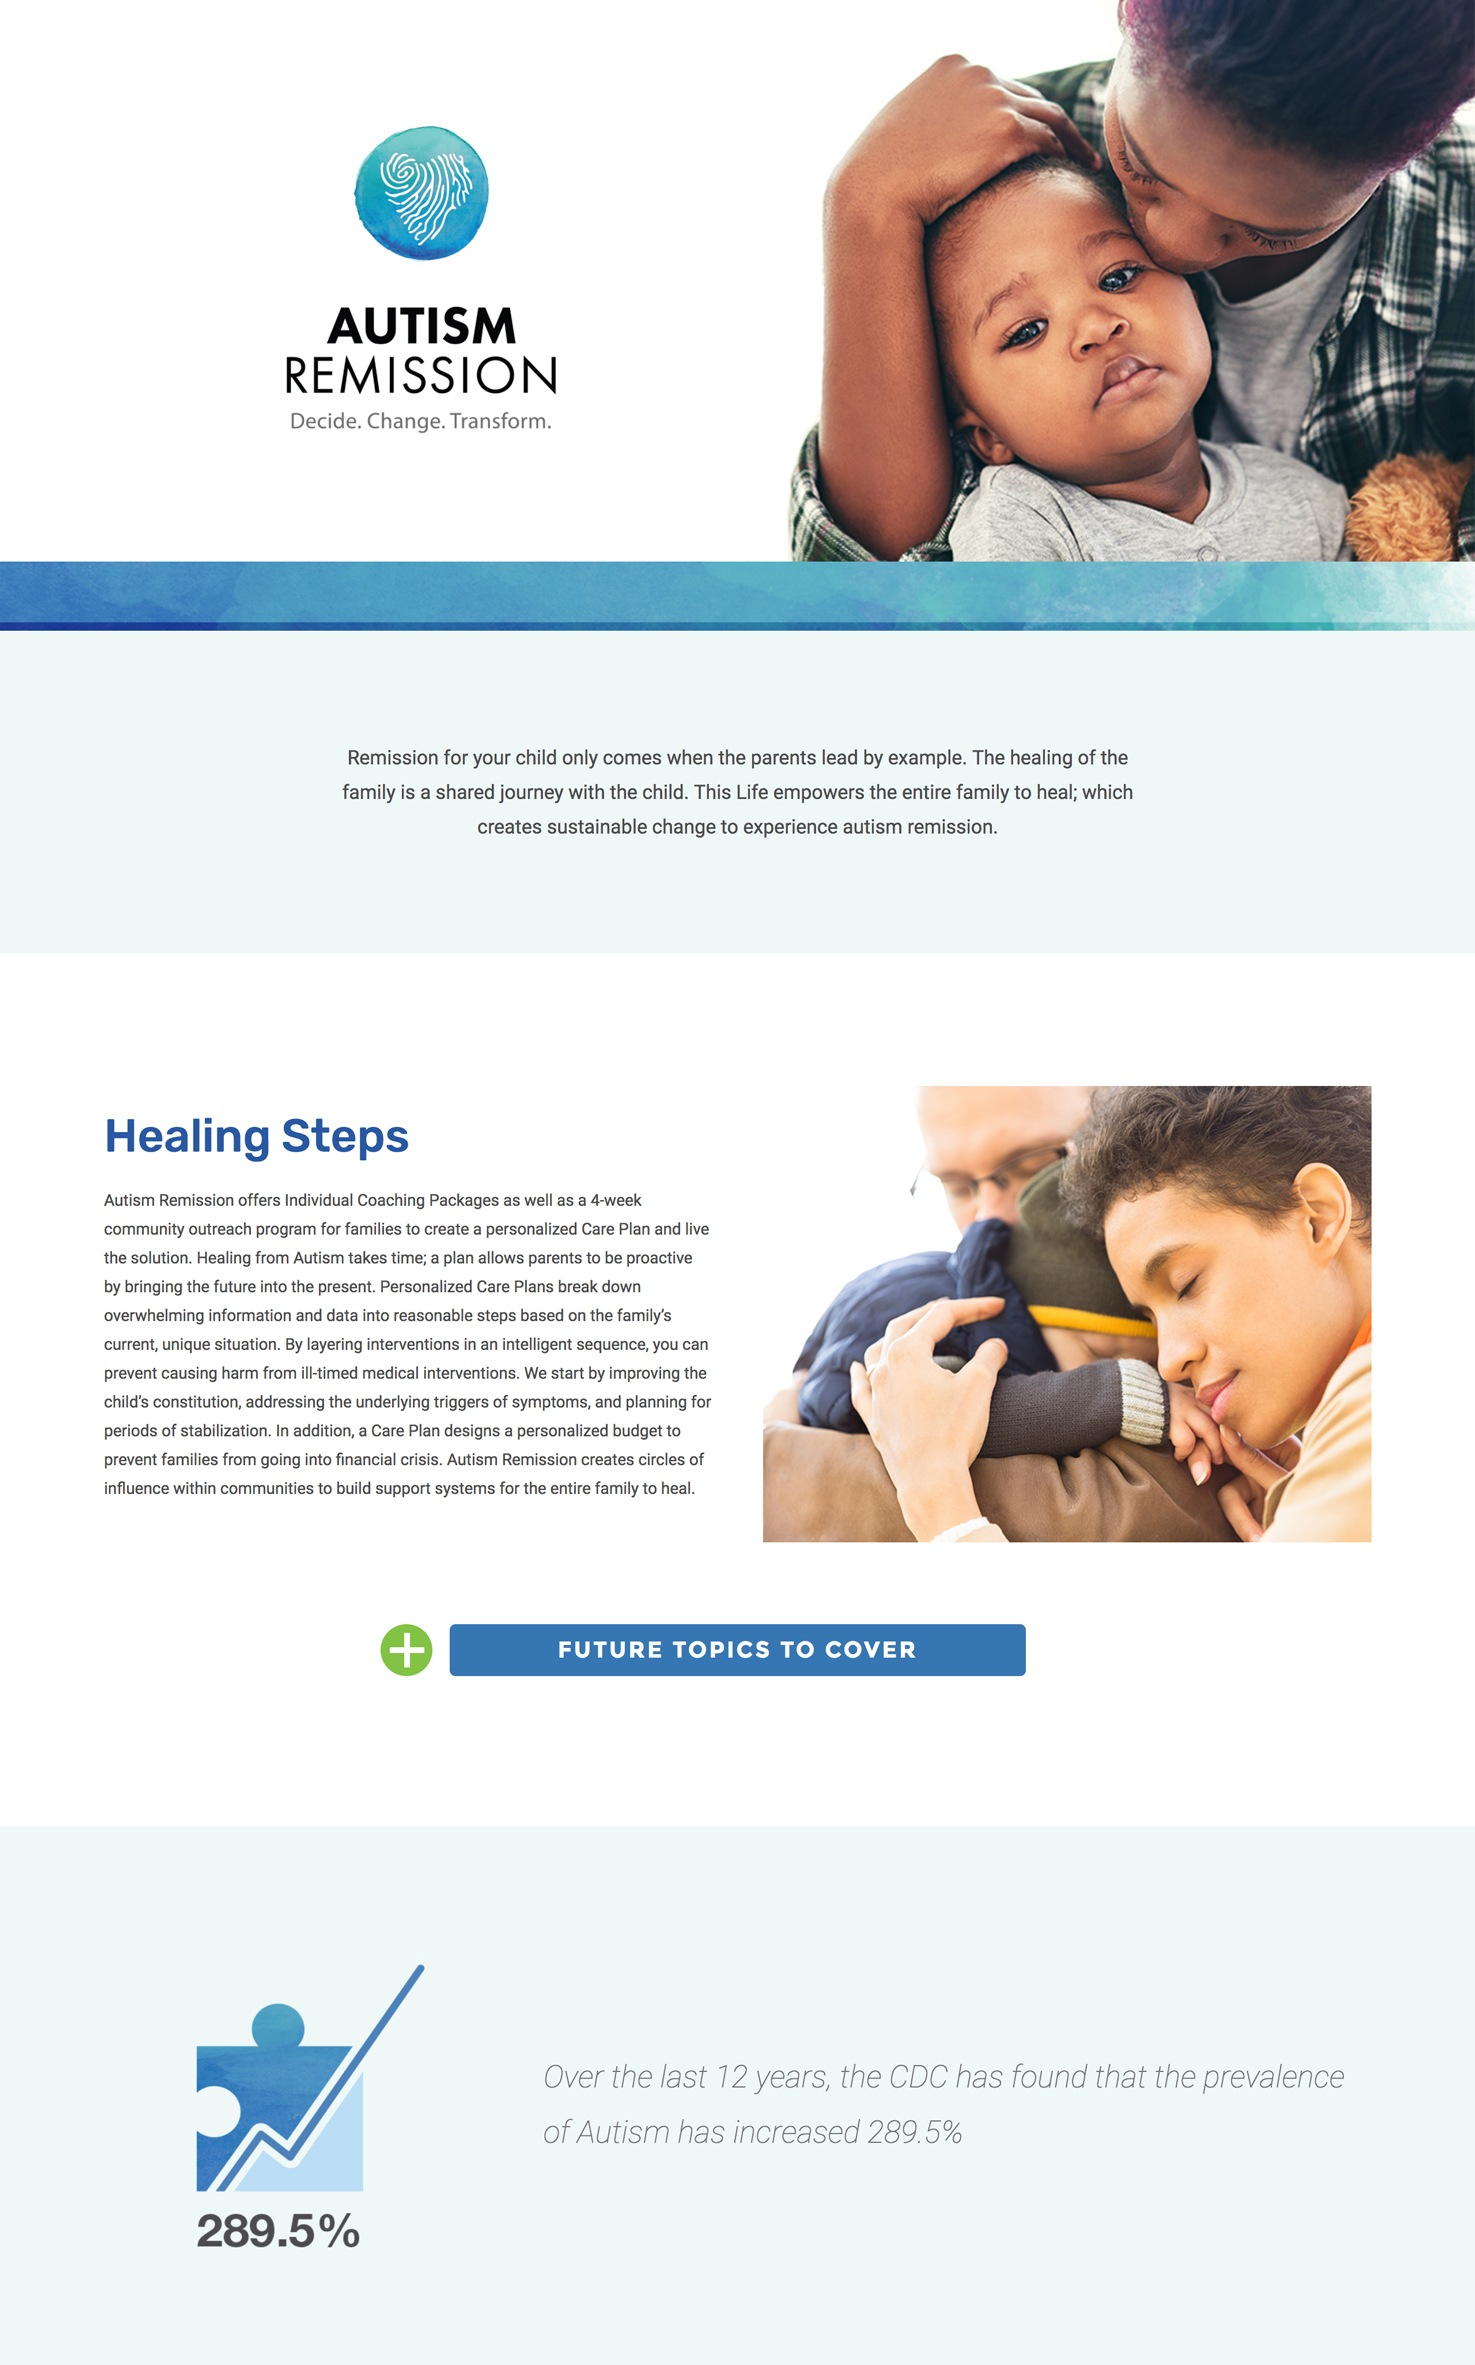 A screenshot of the autism remission landing page